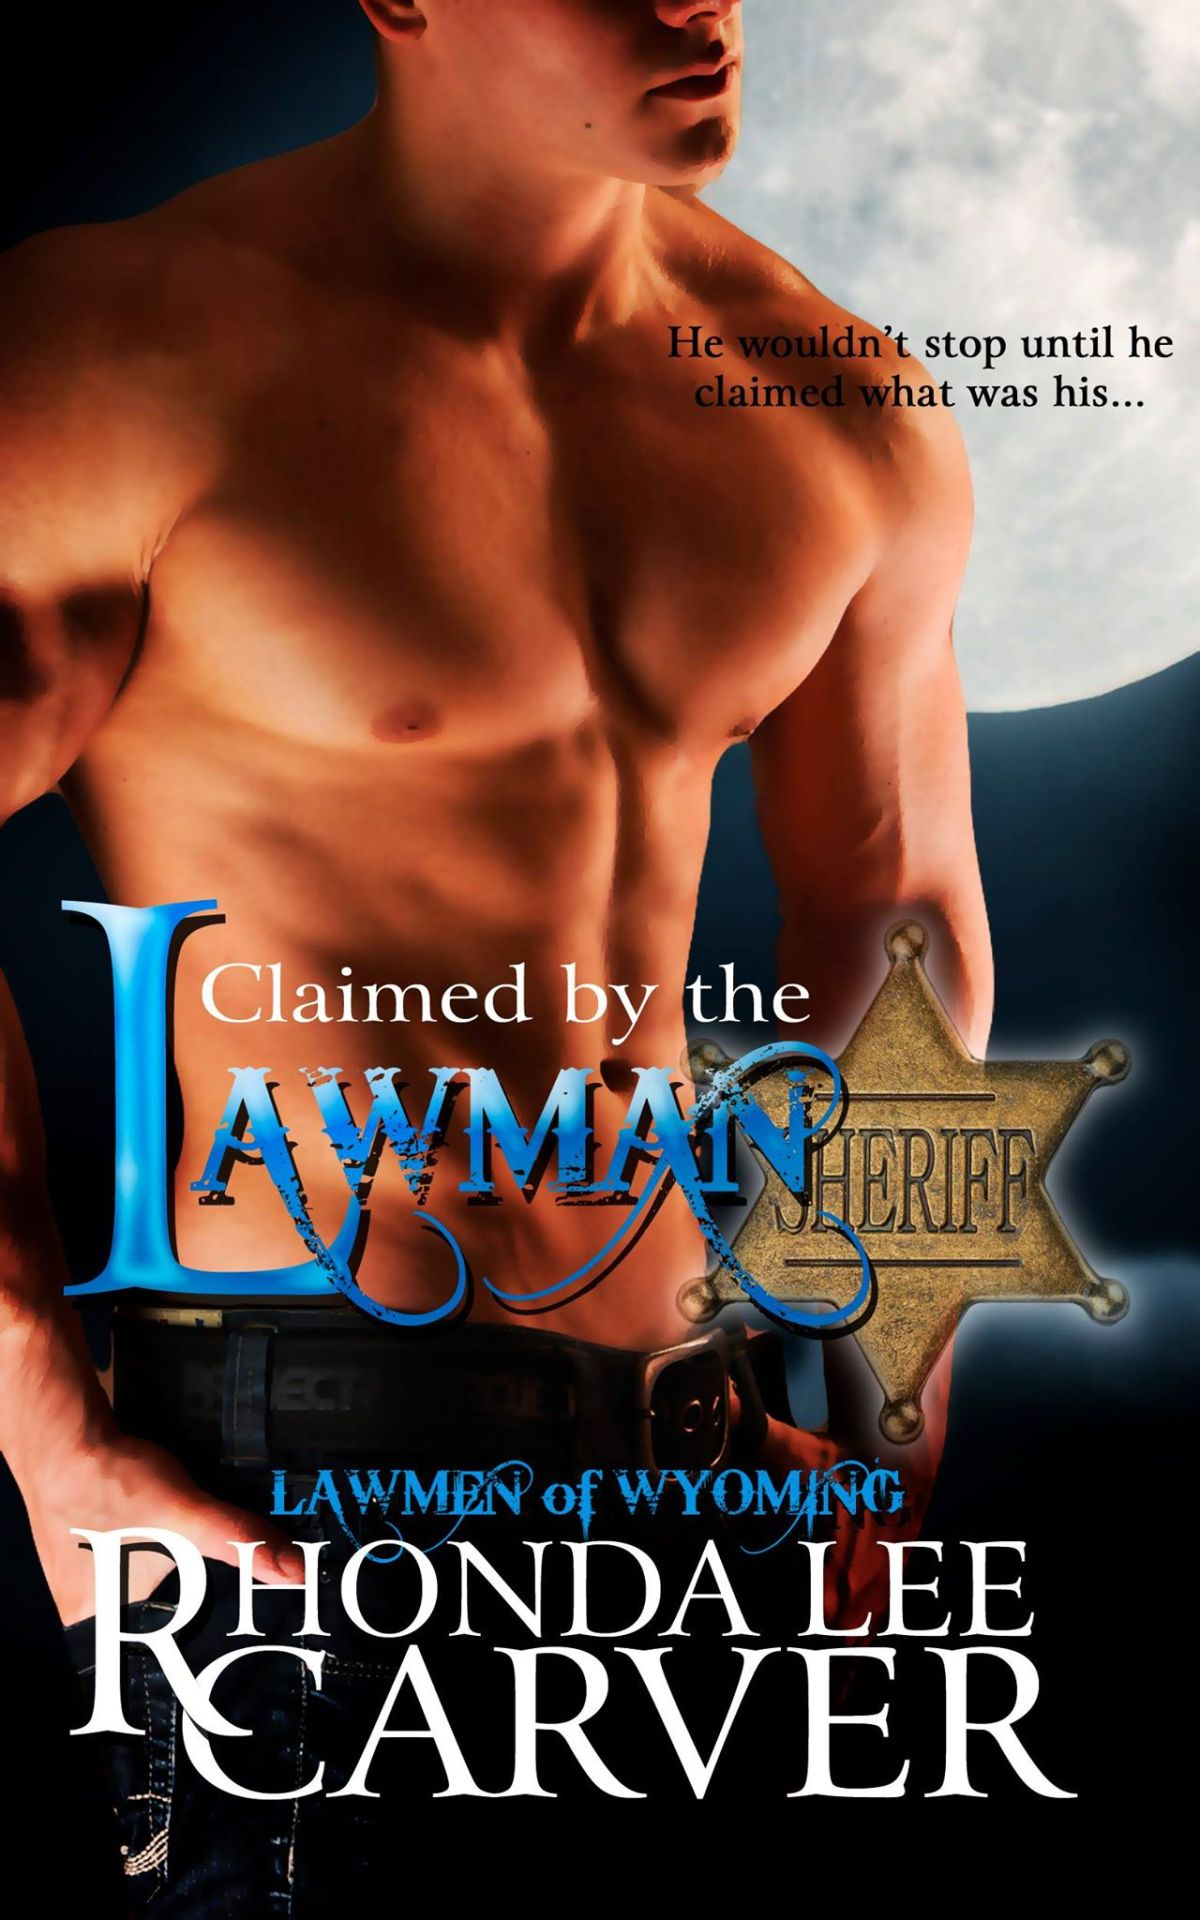 Claimed by the Lawman by Rhonda Lee Carver